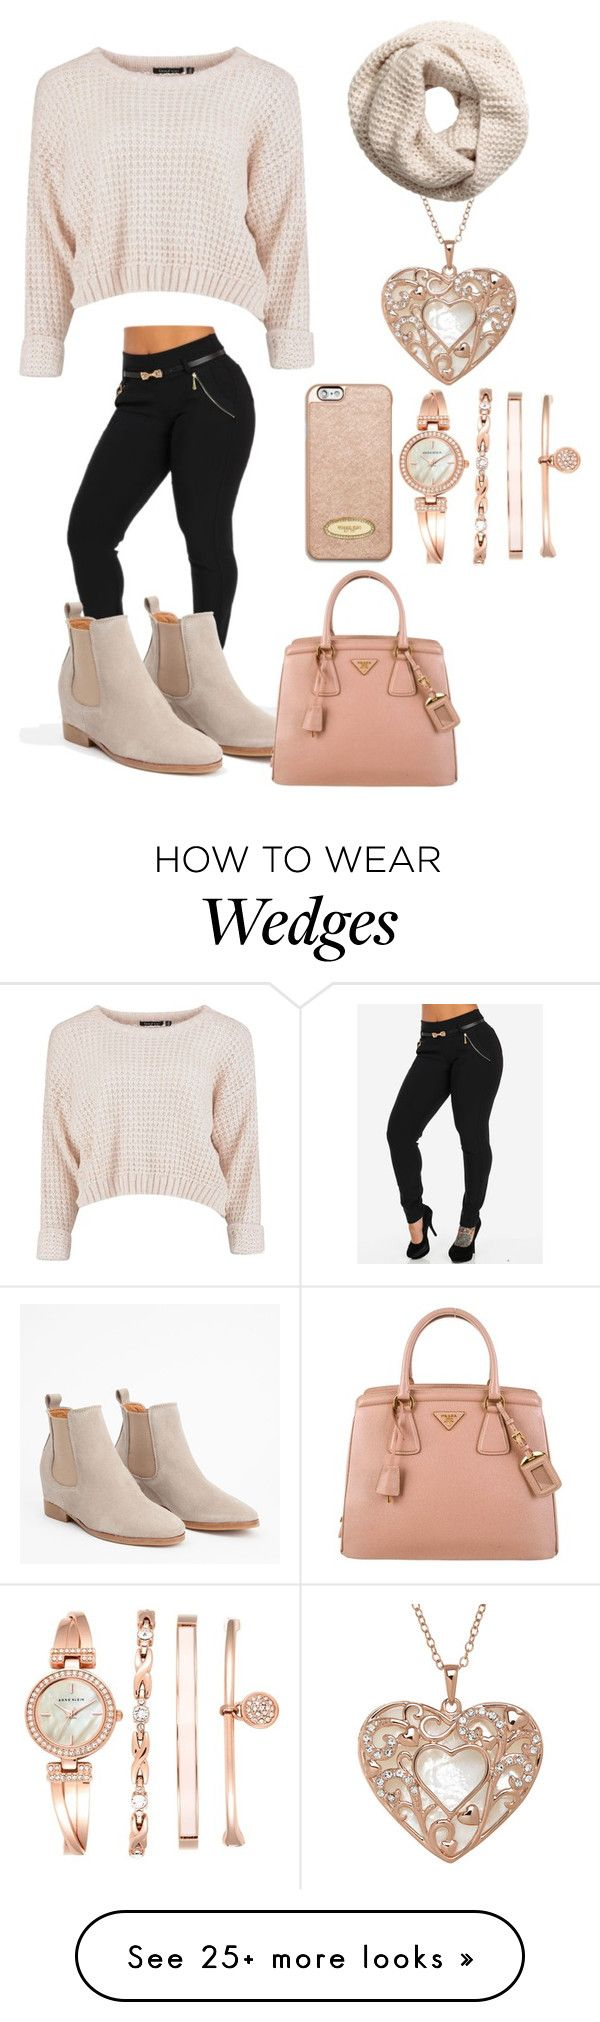 """""""Happy Thanksgiving"""" by therealangel on Polyvore featuring Anne Klein, H&M, Prada and MICHAEL Michael Kors"""